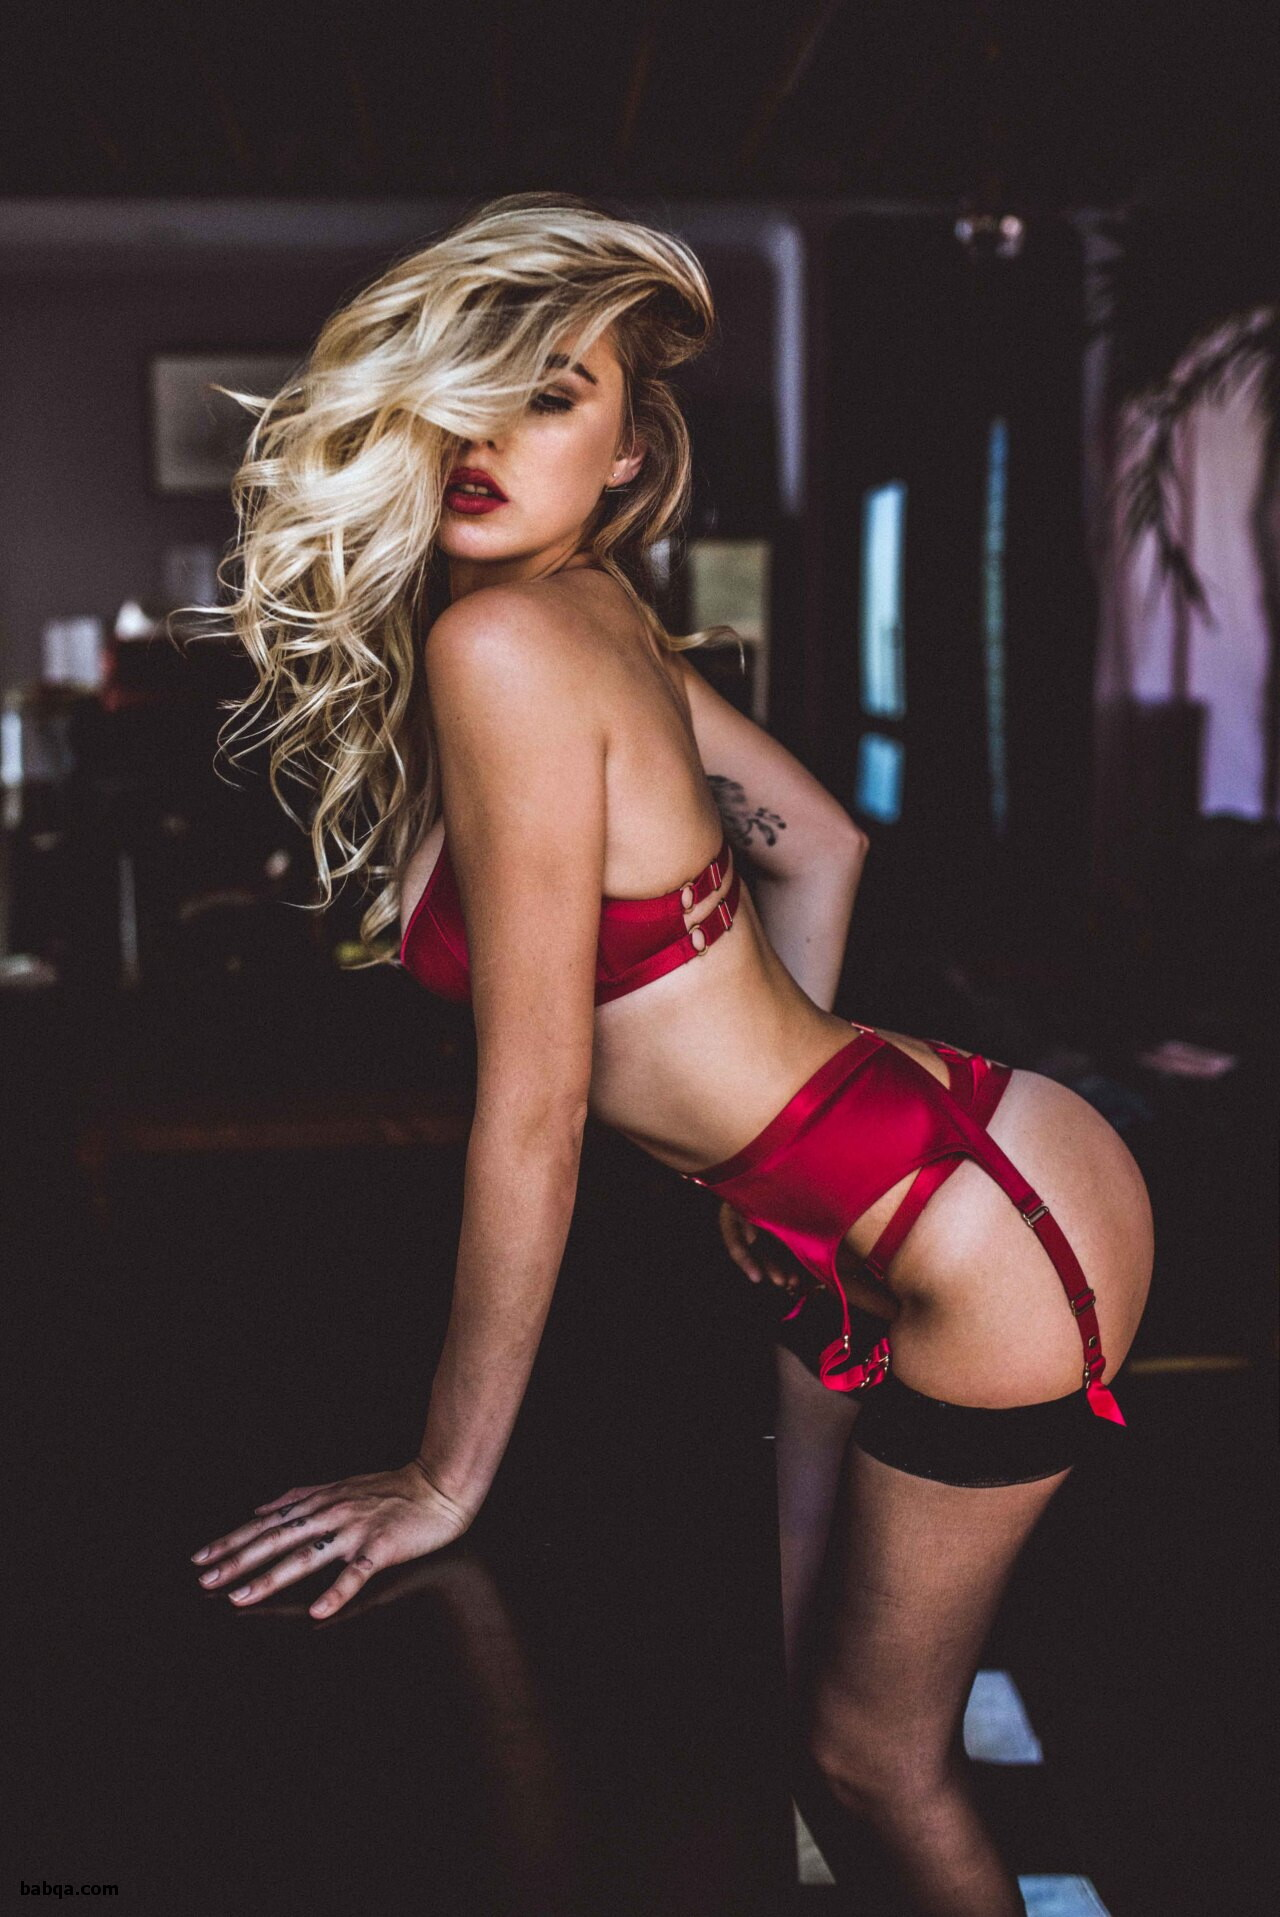 sexy blondes in lingerie and slutty lingerie babes